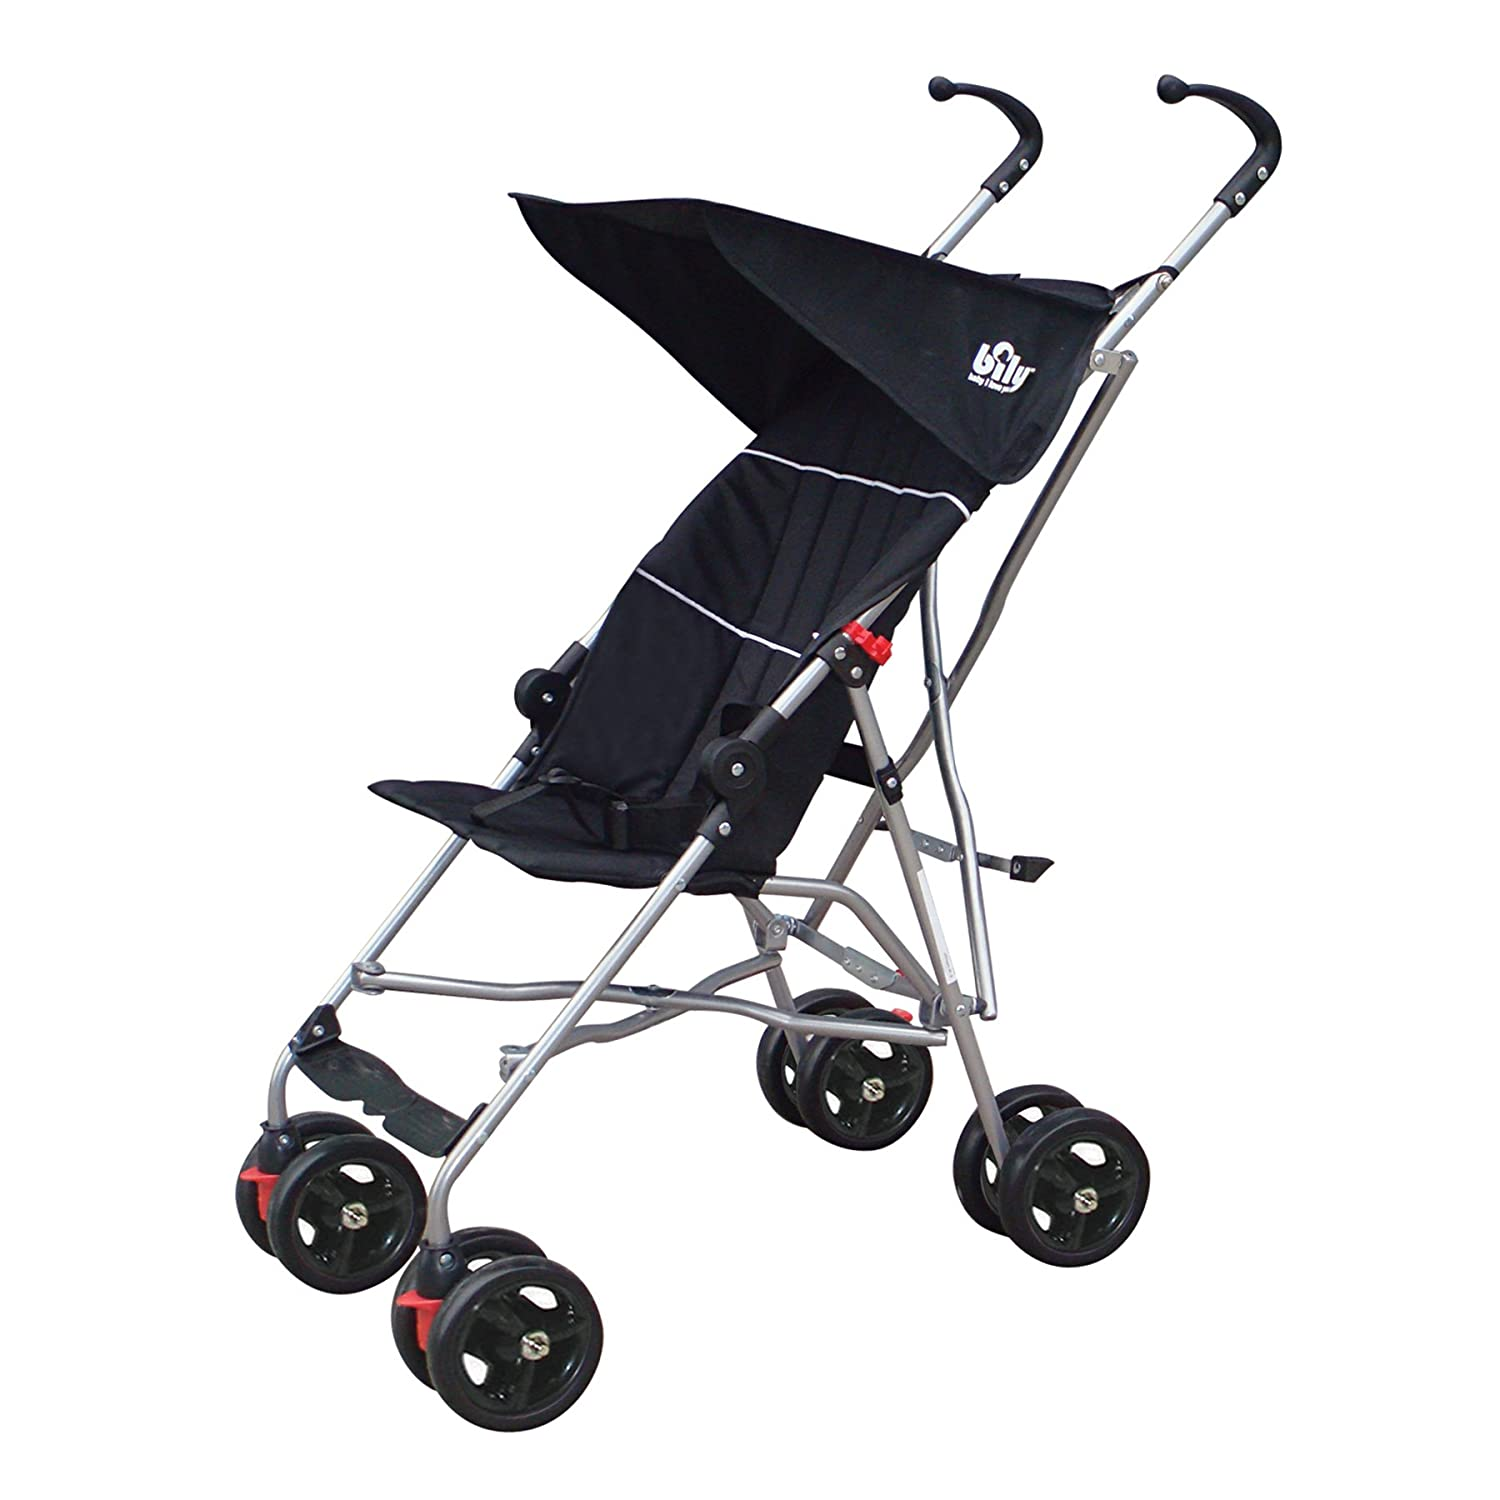 Bily Umbrella Stroller, Black BSB1GBK